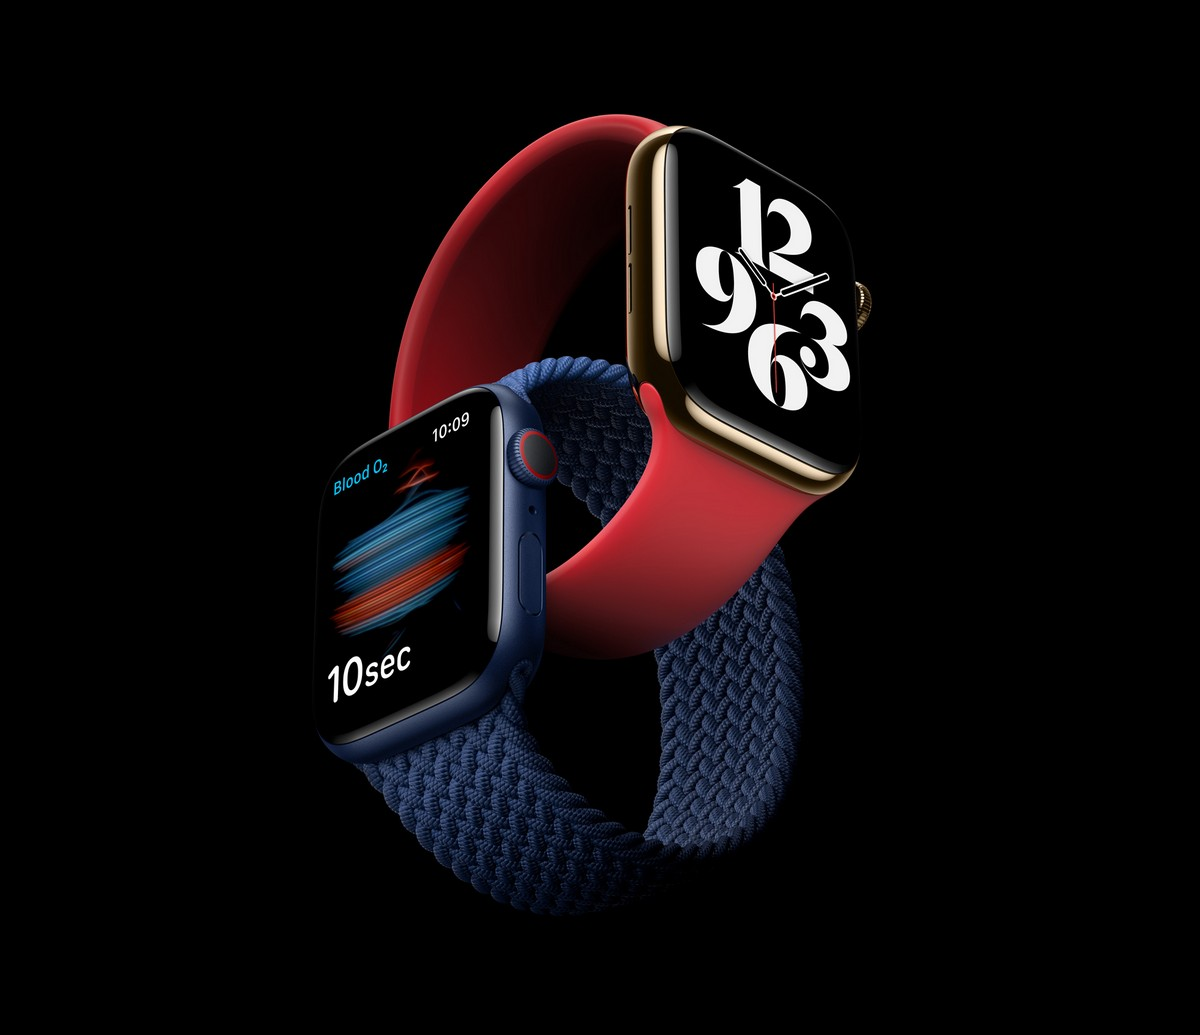 Apple Watch Survey Hints At Plans For Blood Glucose Monitoring